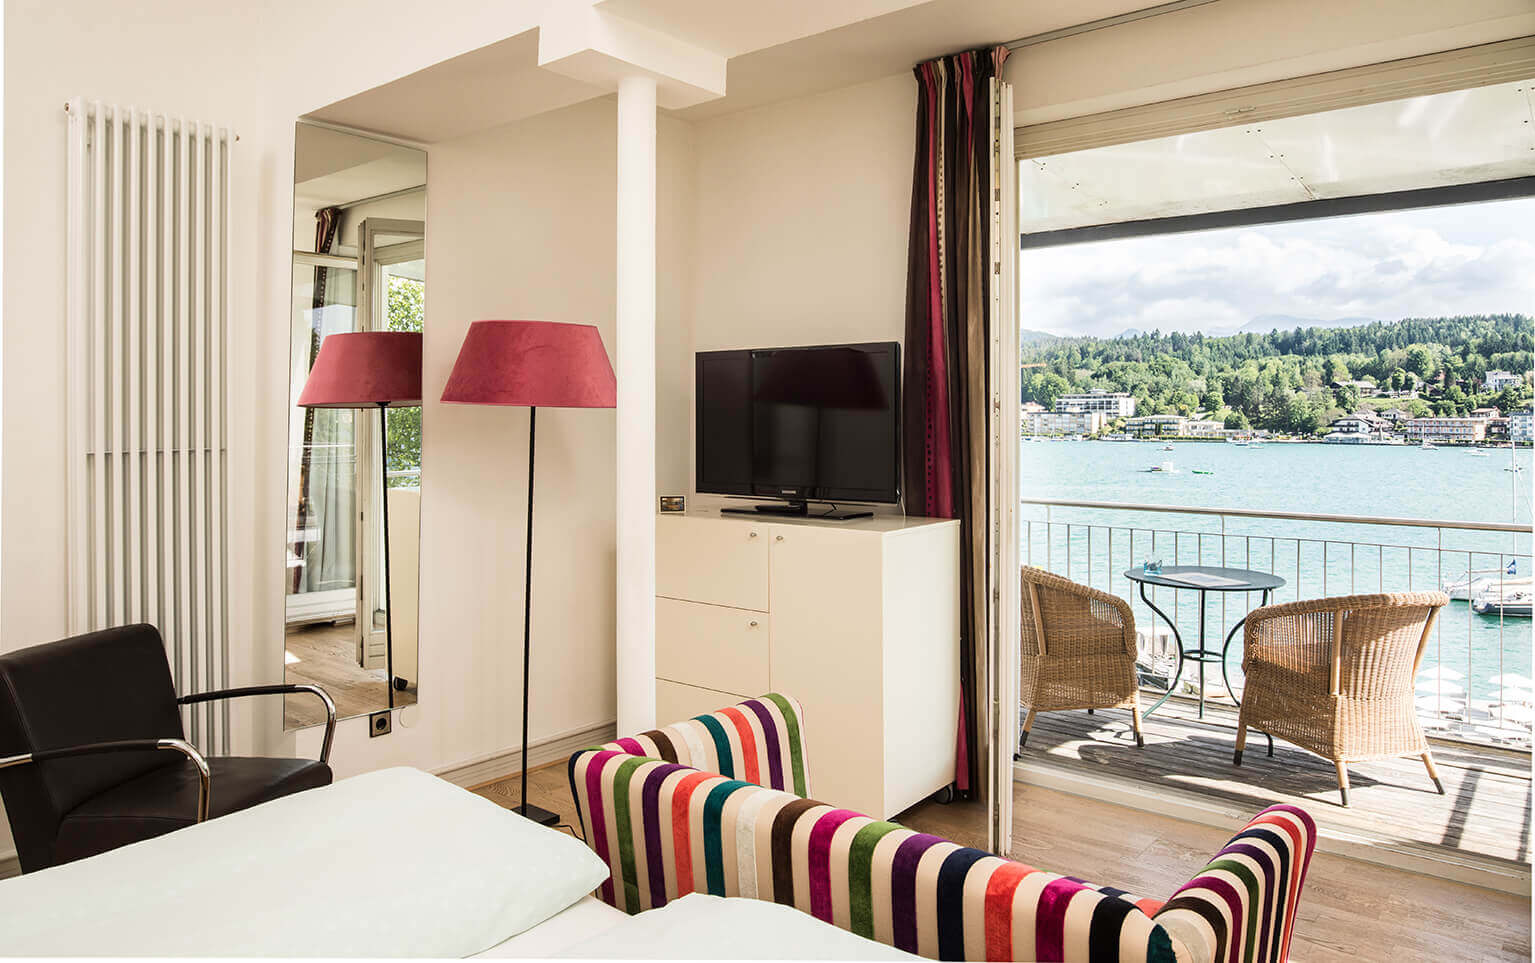 LARGE DOUBLE ROOM LAKE VIEW